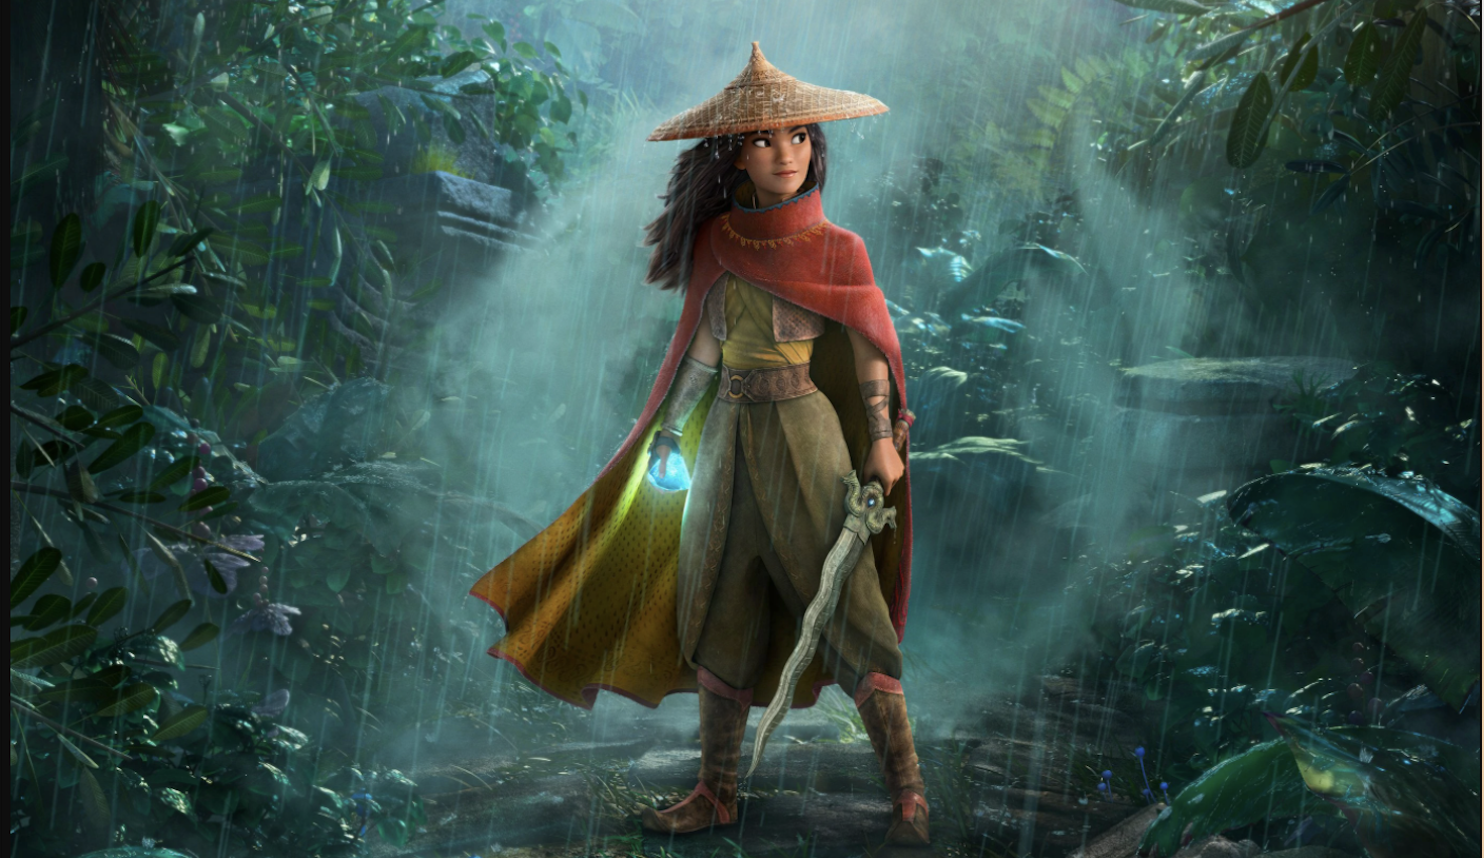 Disney's Raya And The Last Dragon: Southeast Asian And Filipino Cultural References